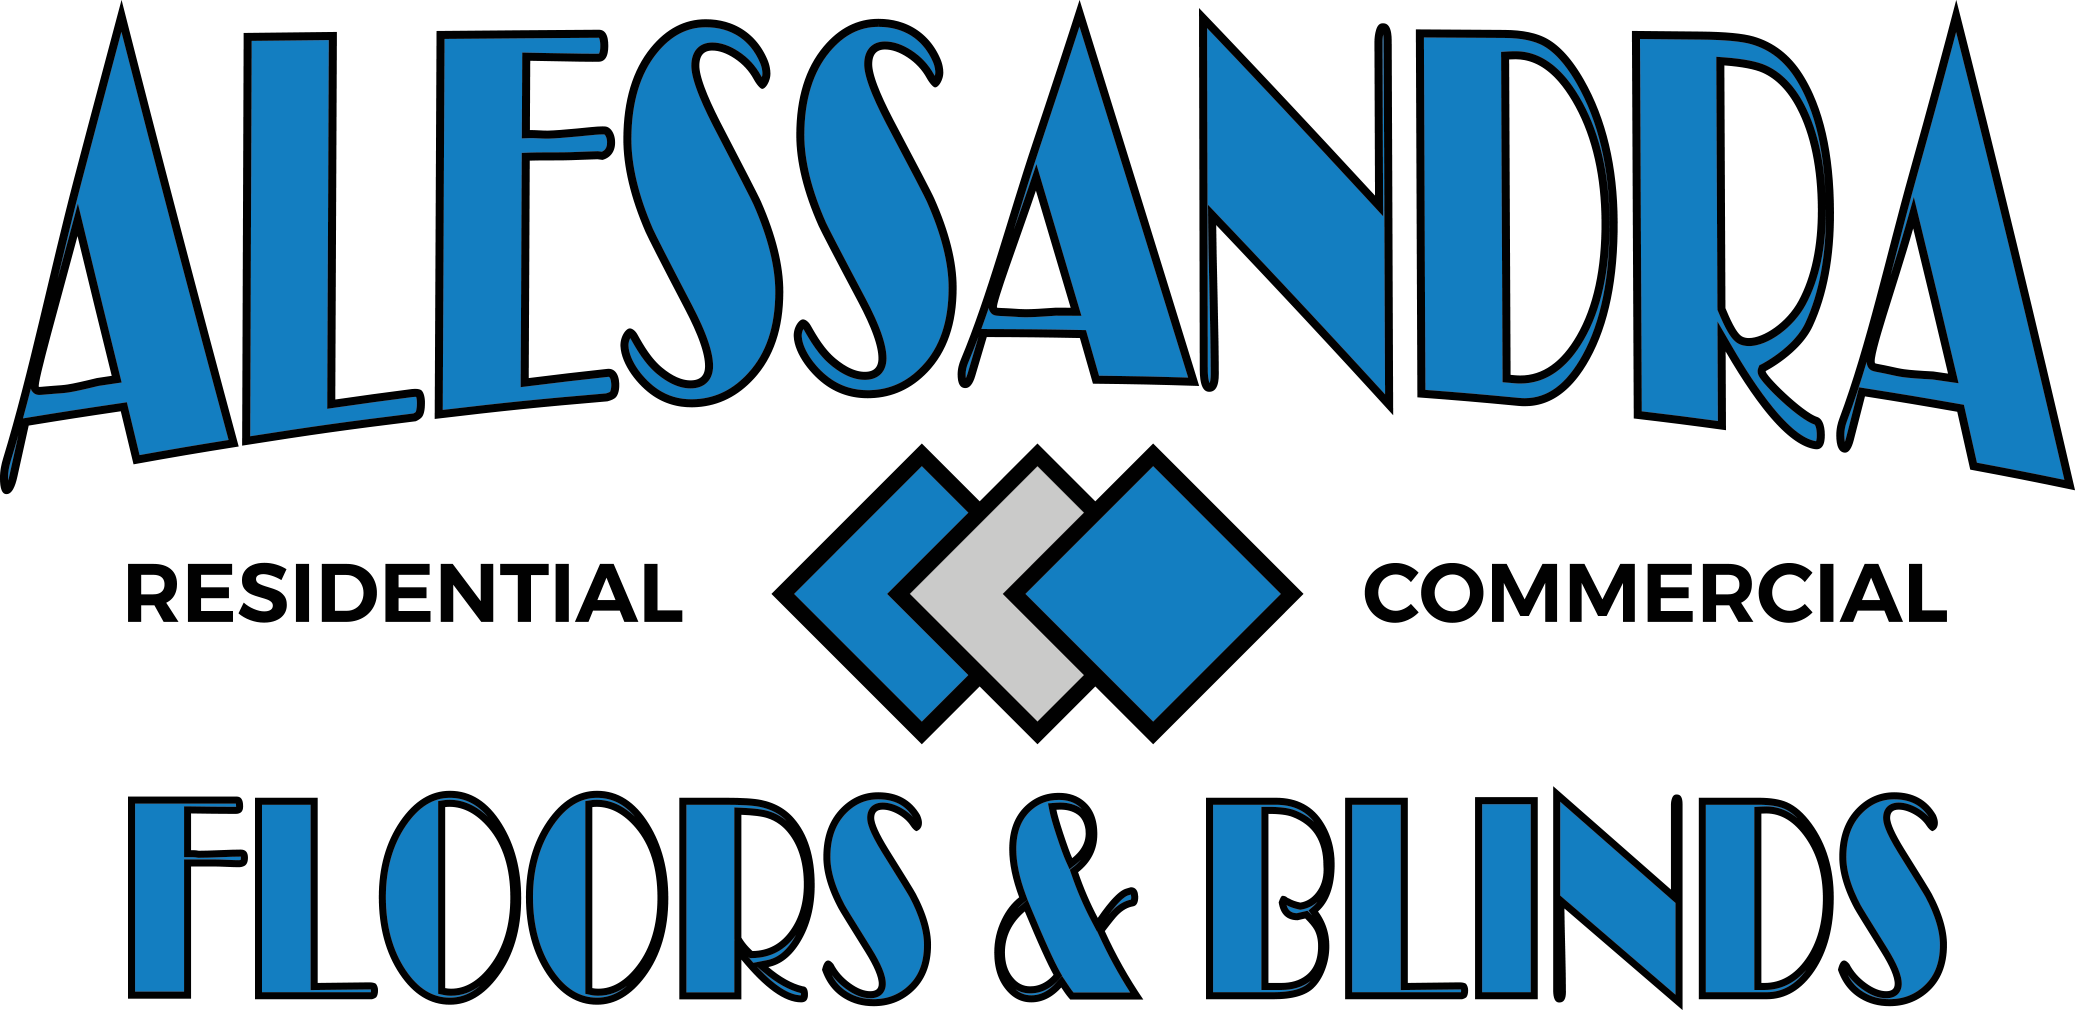 Alessandra Floors & Blinds - Denville New Jersey